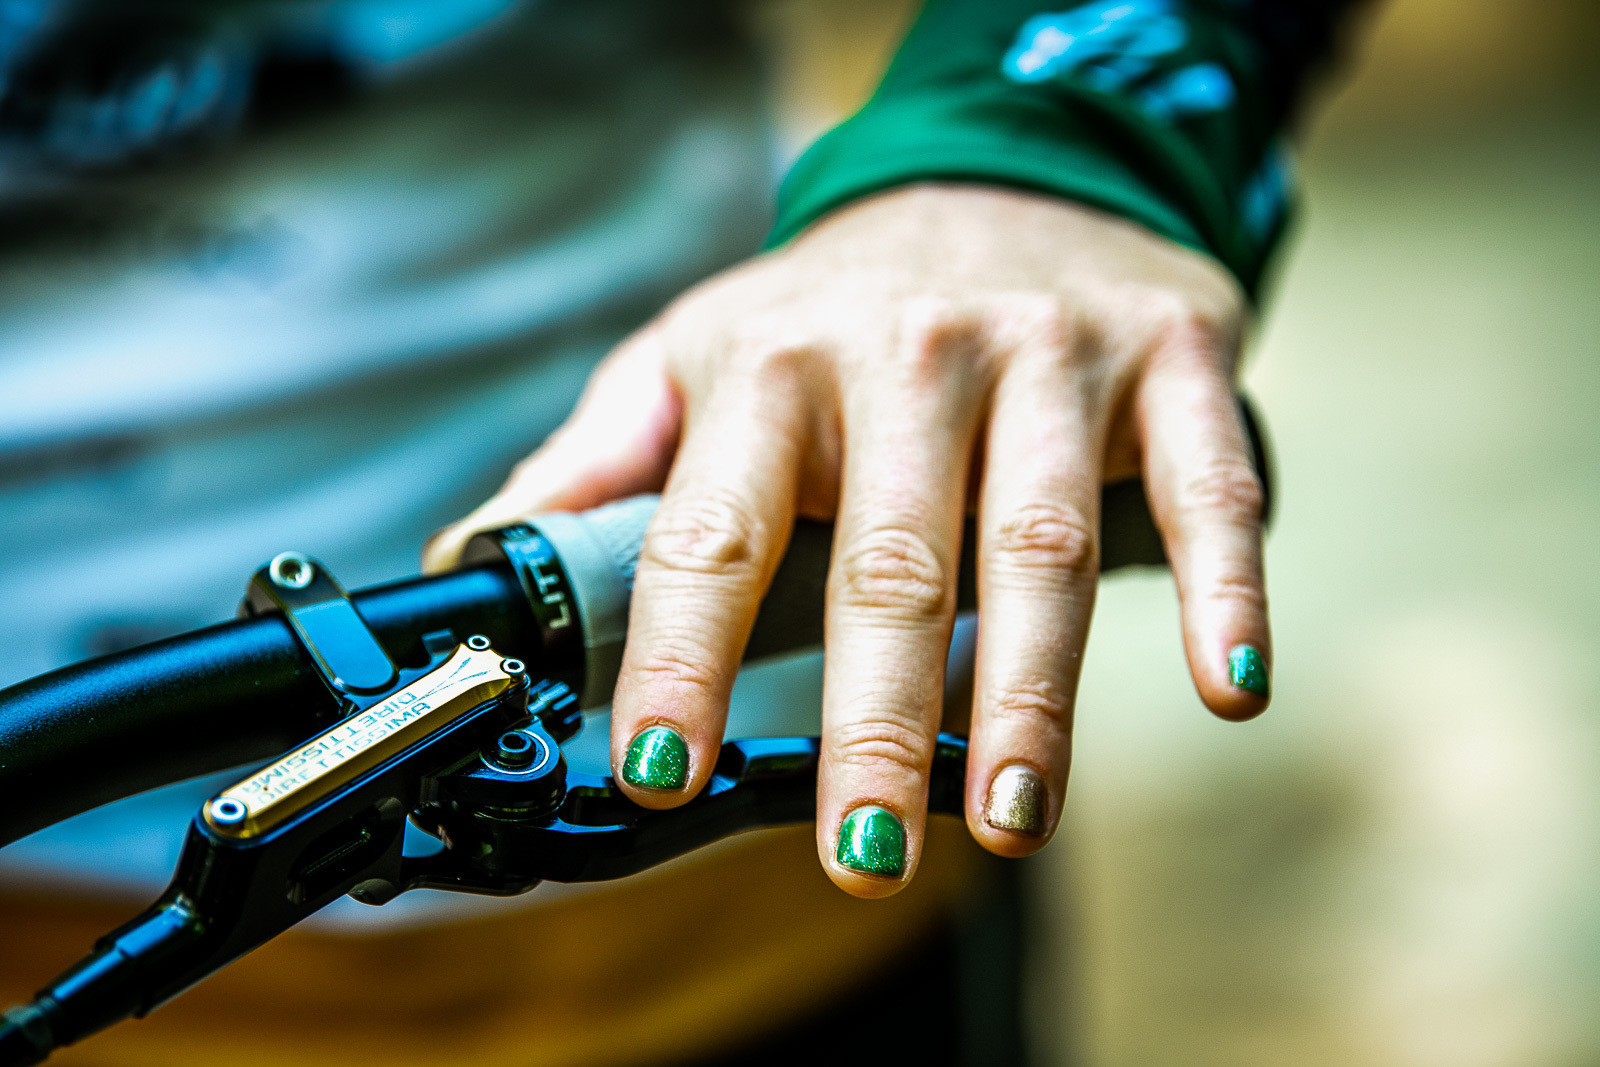 Matching Fingernail Polish - Tracey and Mick Hannah's World Champs Polygon DH Race Bikes - Mountain Biking Pictures - Vital MTB